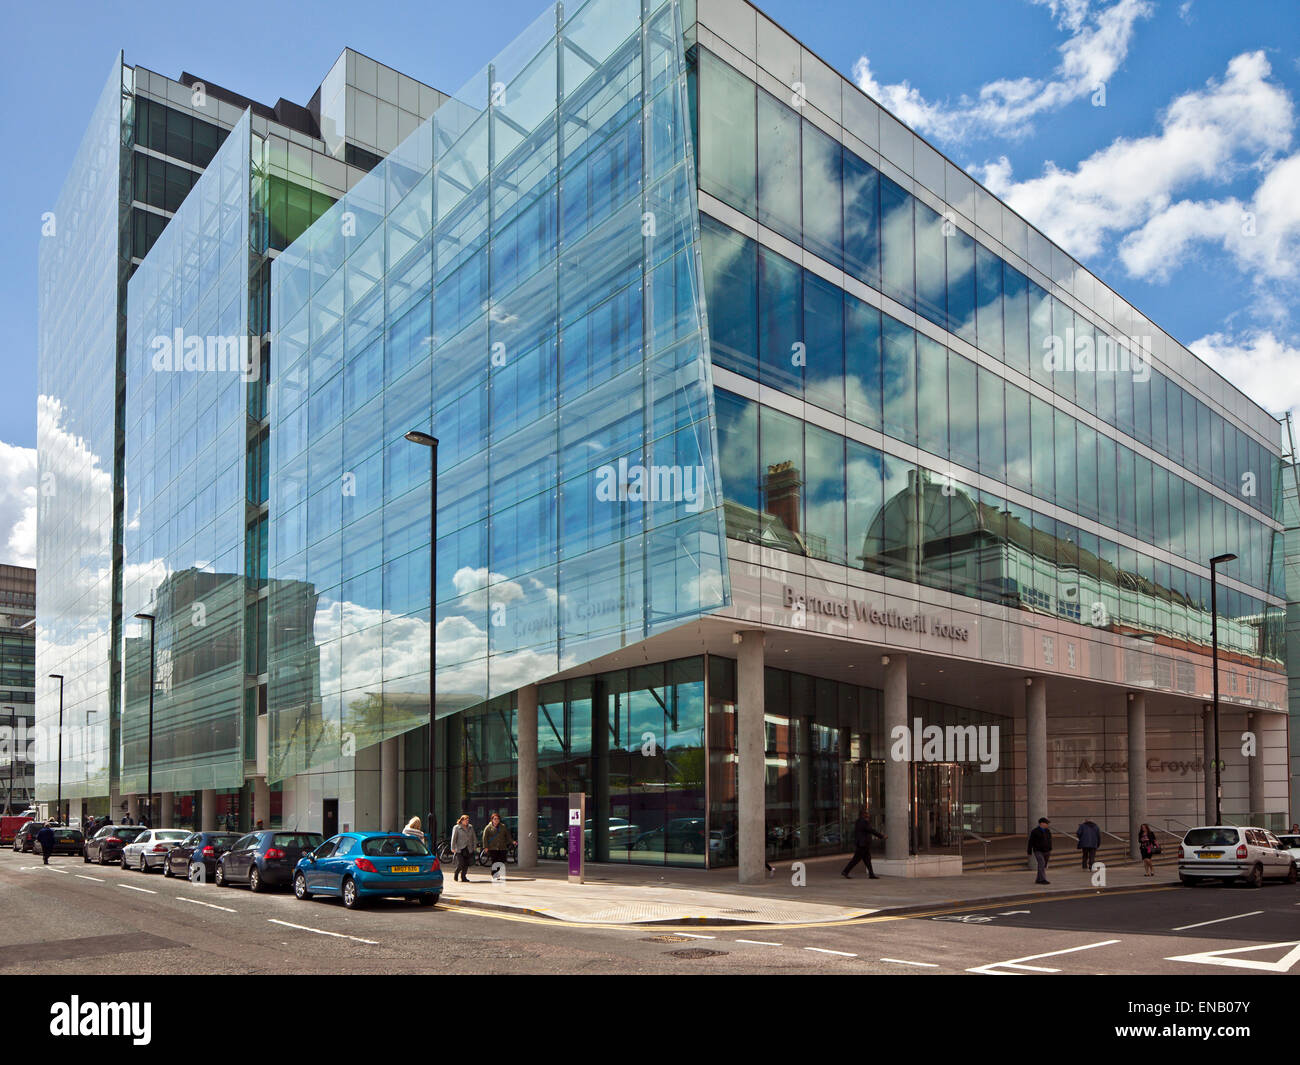 Bernard Weatherill House,Croydon Council offices. - Stock Image